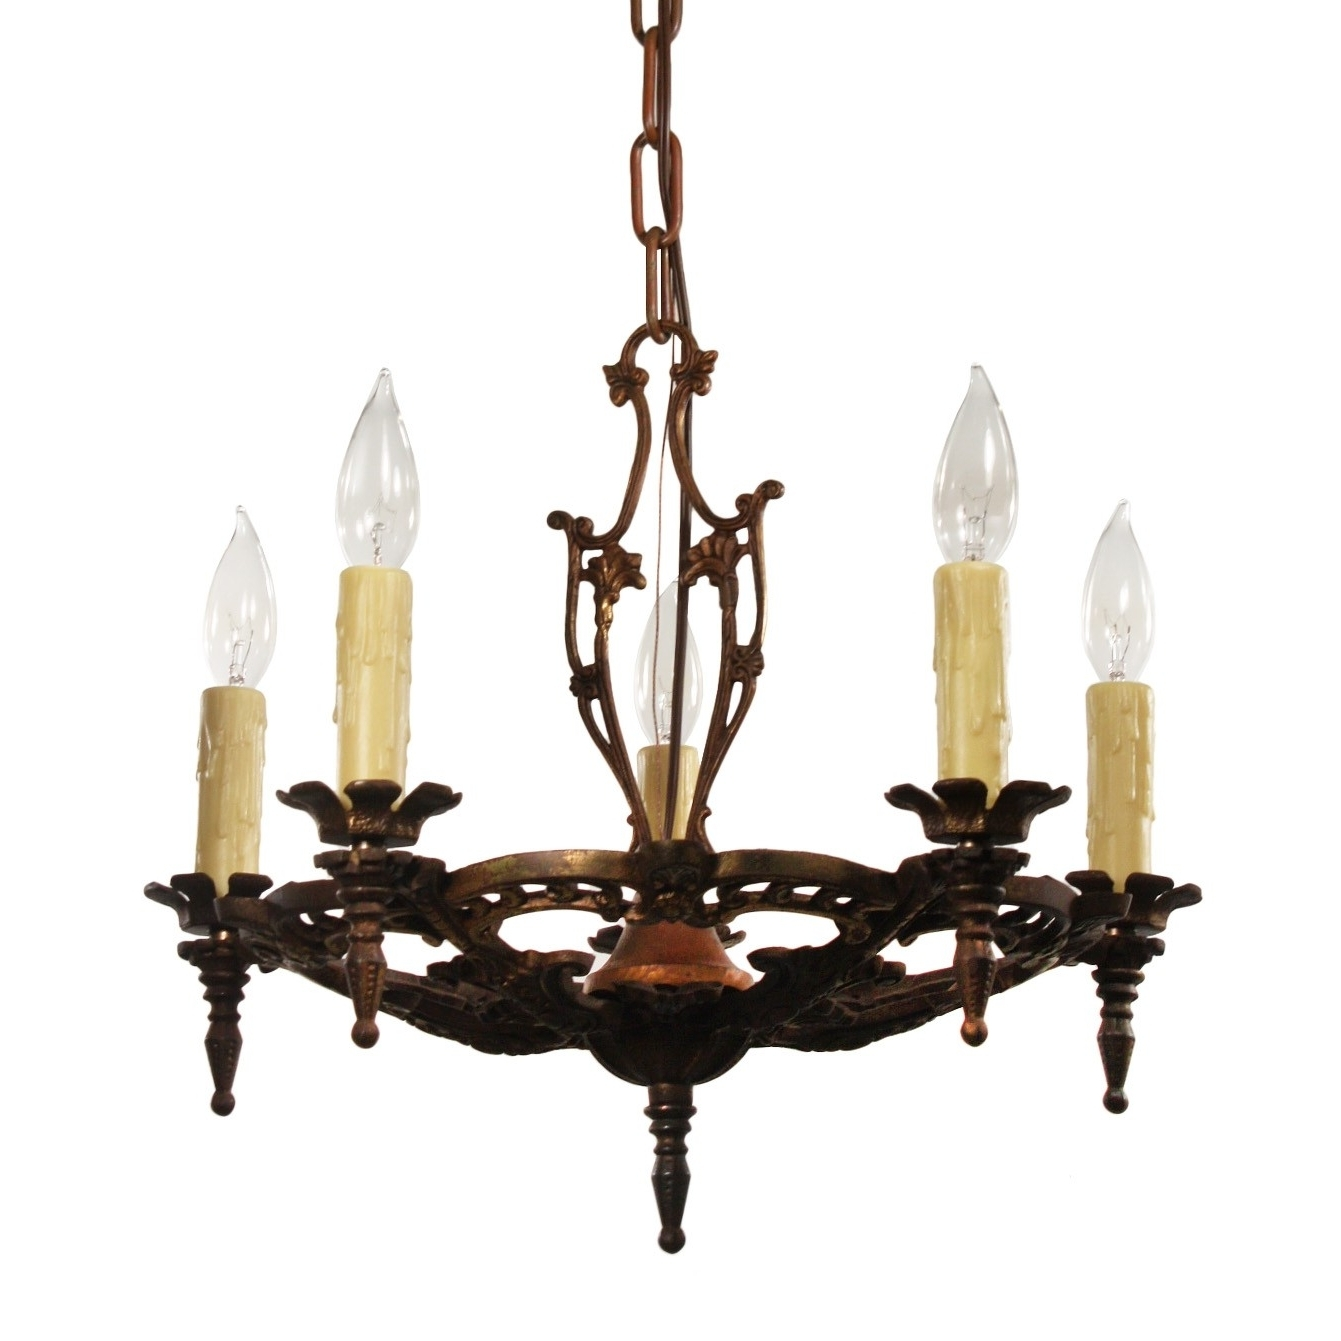 Well Known Antique Chandelier In Cast Iron, Antique Lighting – Preservation With Cast Iron Antique Chandelier (View 19 of 20)